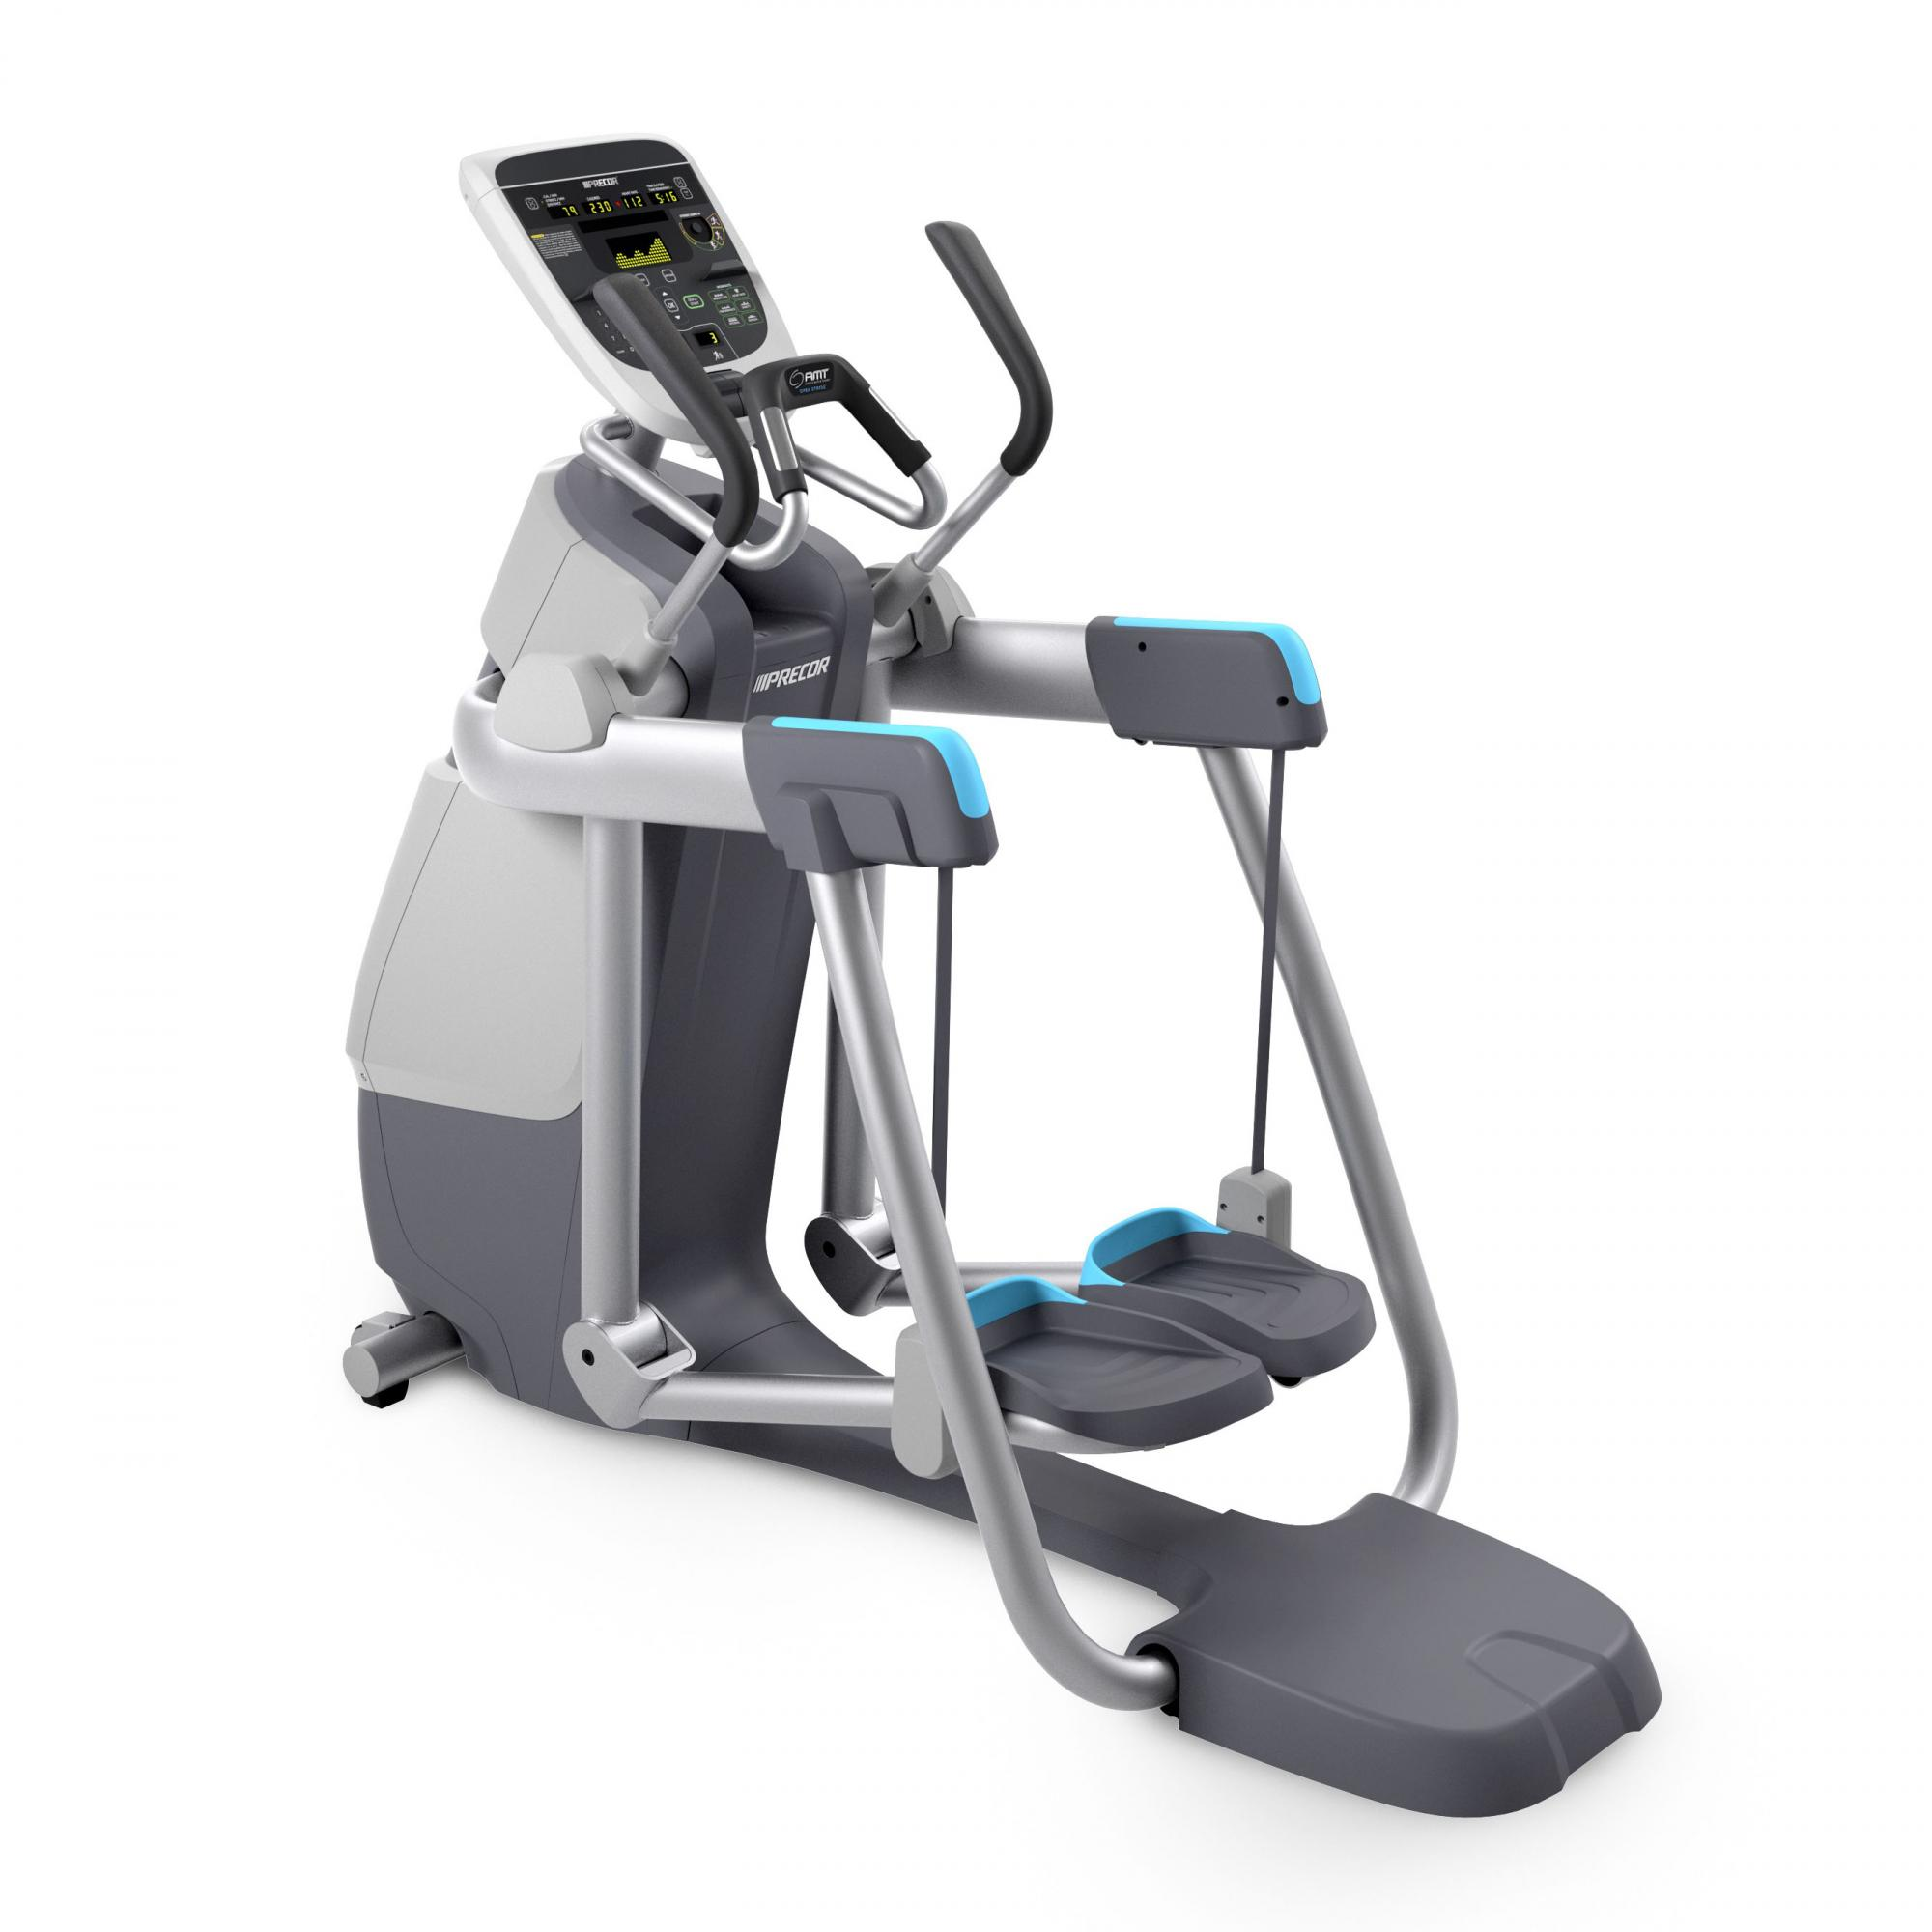 Precor Home Fitness Exercise Equipment Best Home Exercise - Home gym equipment for sale